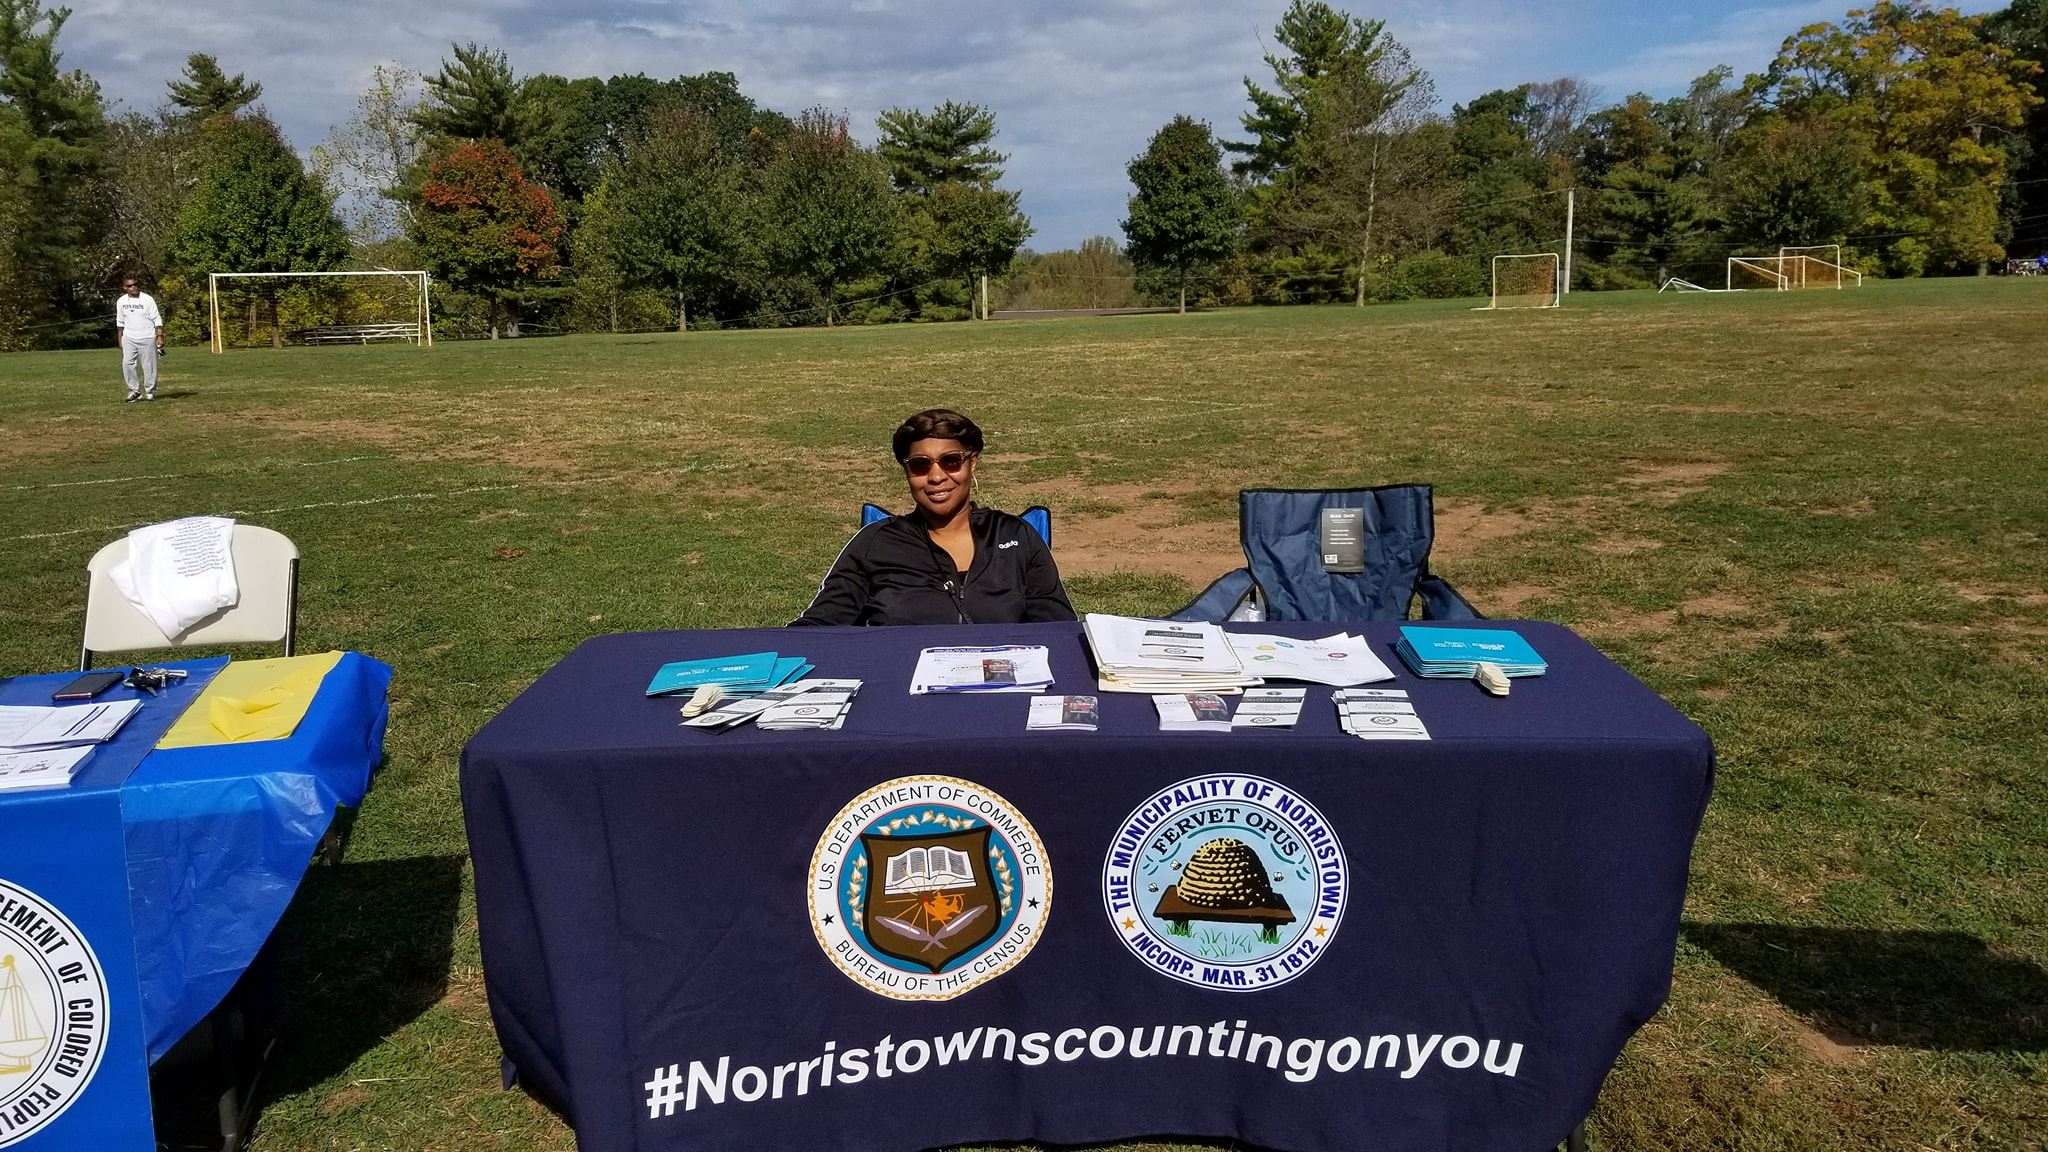 Councilwoman Sonya Sanders at the information table at Community Softball Game